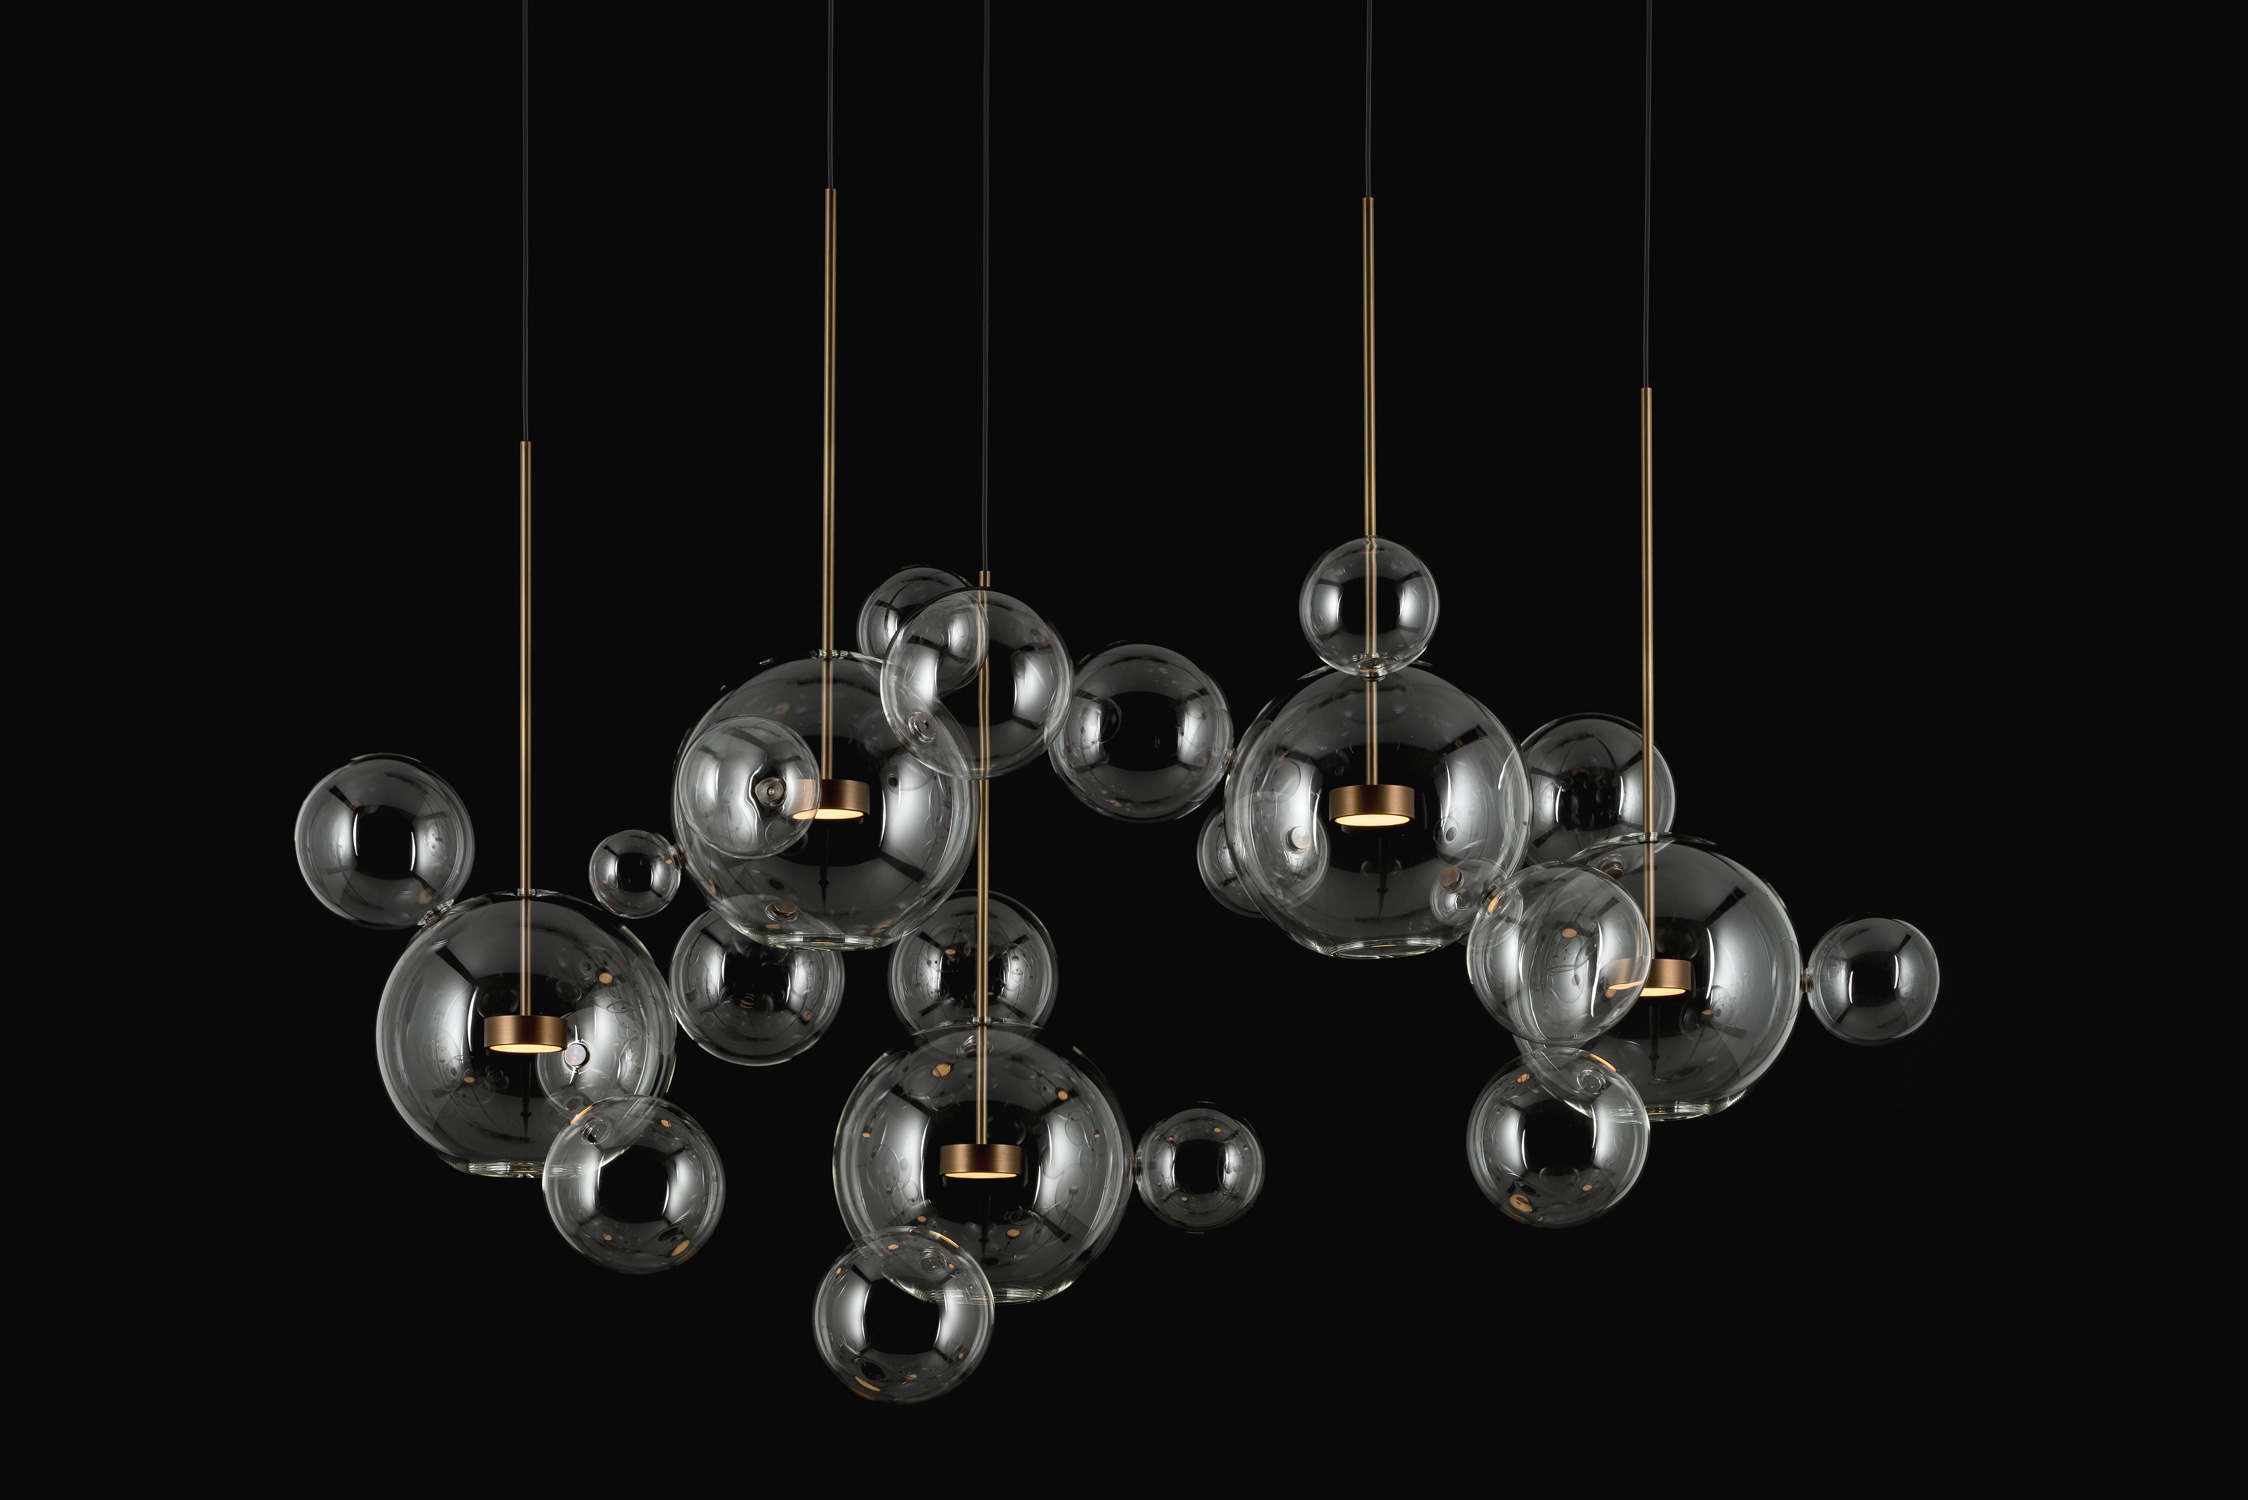 Giopato_Coombes_Bolle_Zigzag_Chandelier_24_Bubbles_Ph_FedericoVilla.jpg